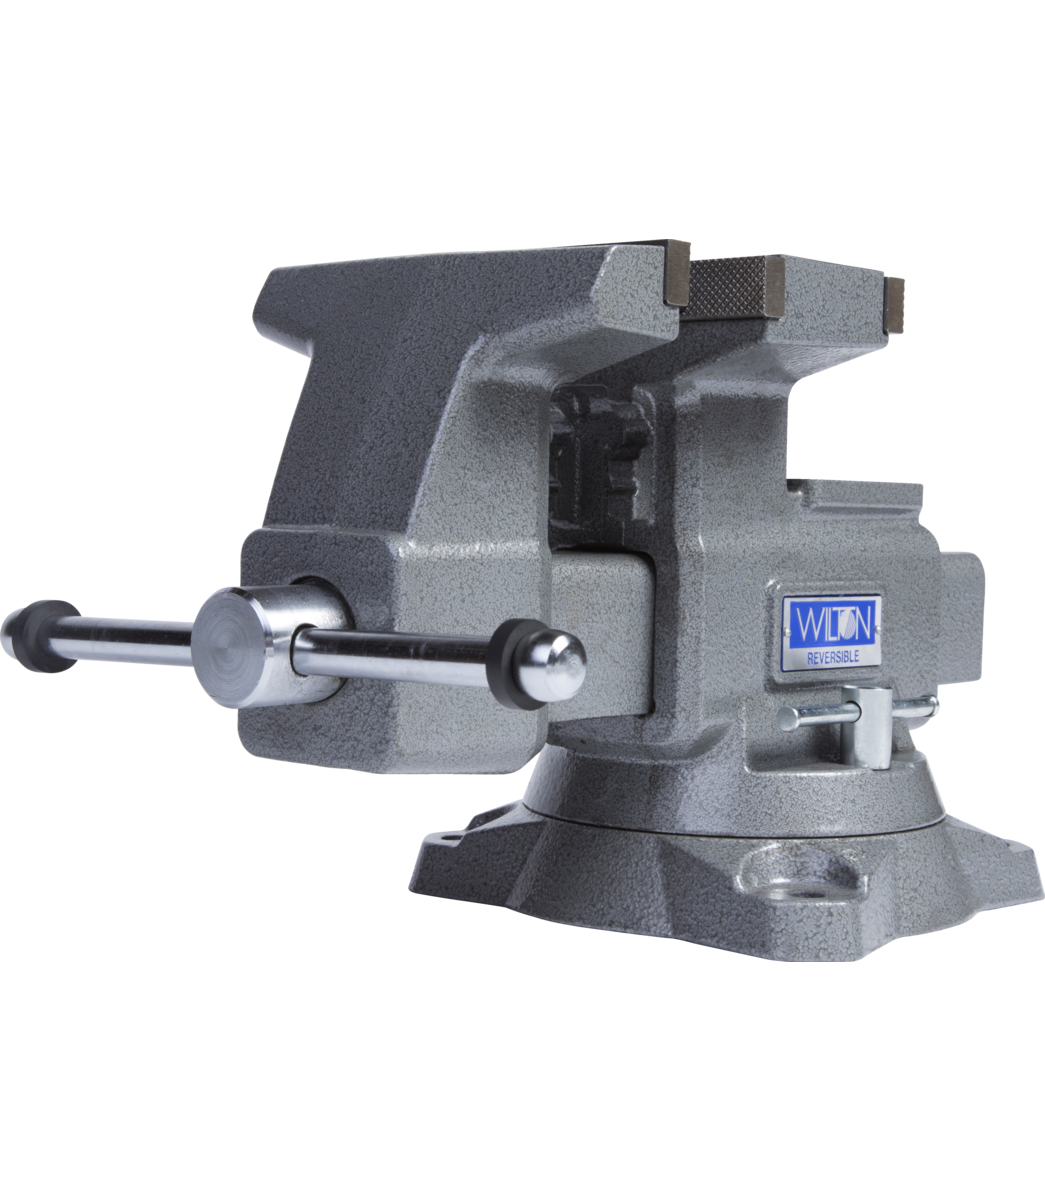 "Manual: Reversible Bench Vise 6-1/2"" Jaw Width with 360° Swivel Base"